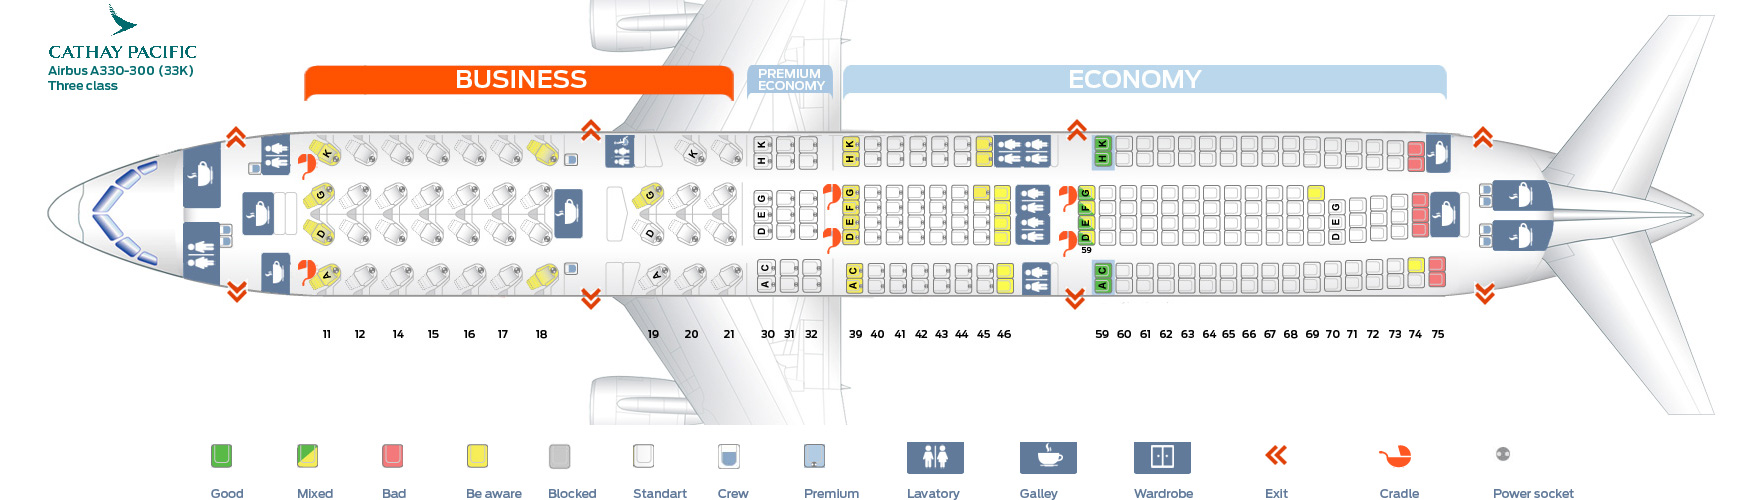 Seat Map Airbus A330-300 Three Class